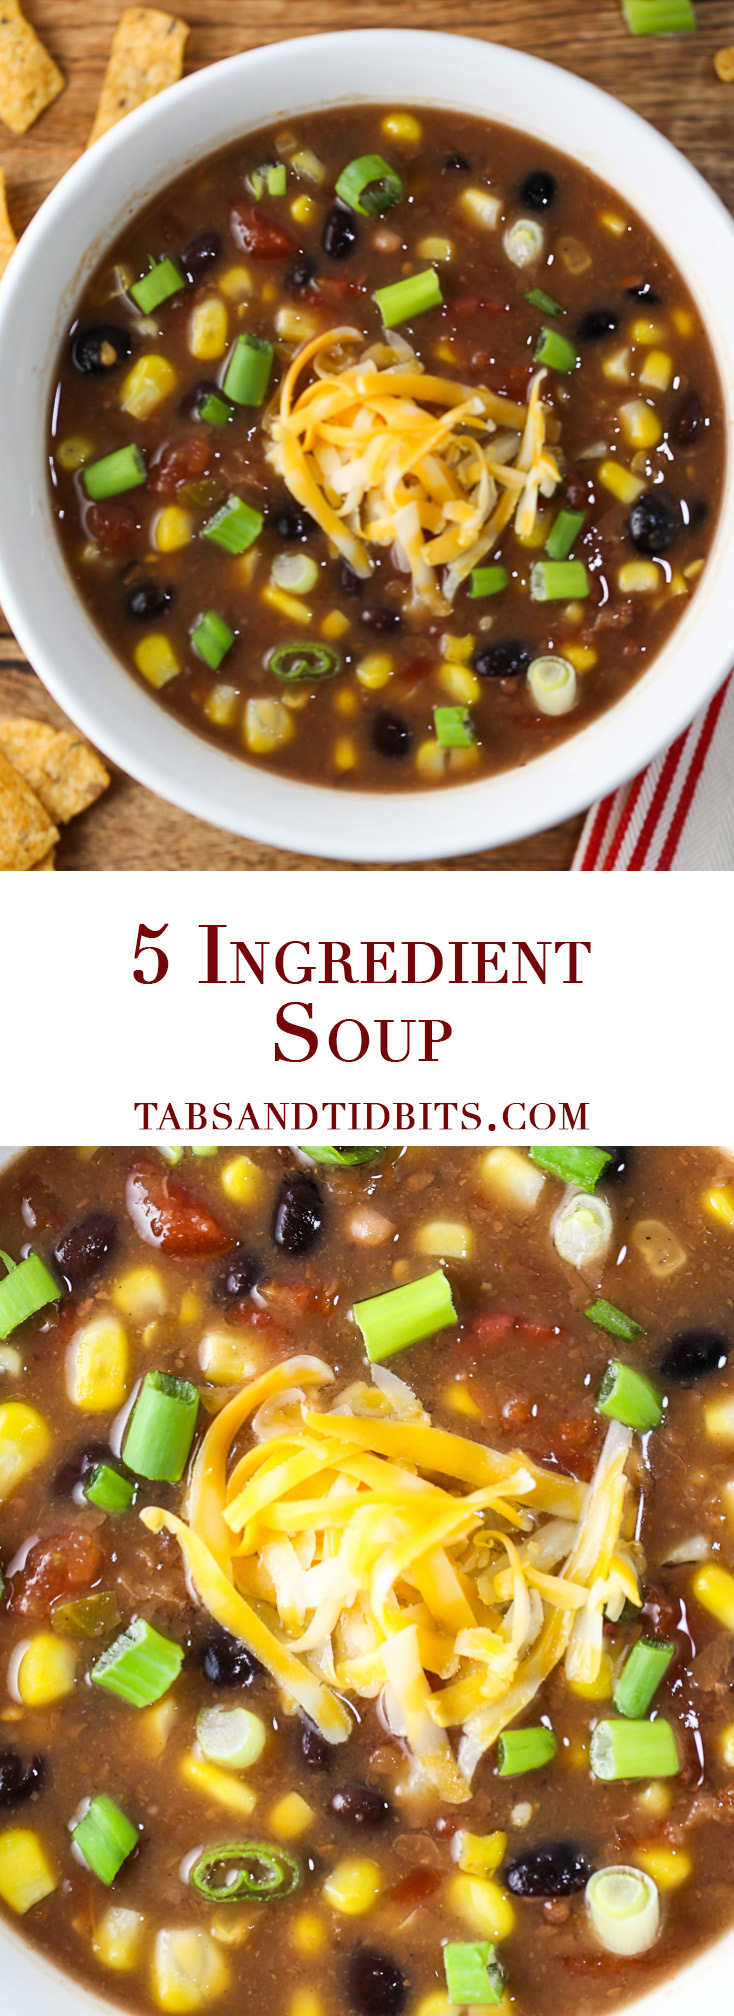 5 Ingredient Soup - A time saving protein-packed soup that is full os healthy fiber and tons of flavor!